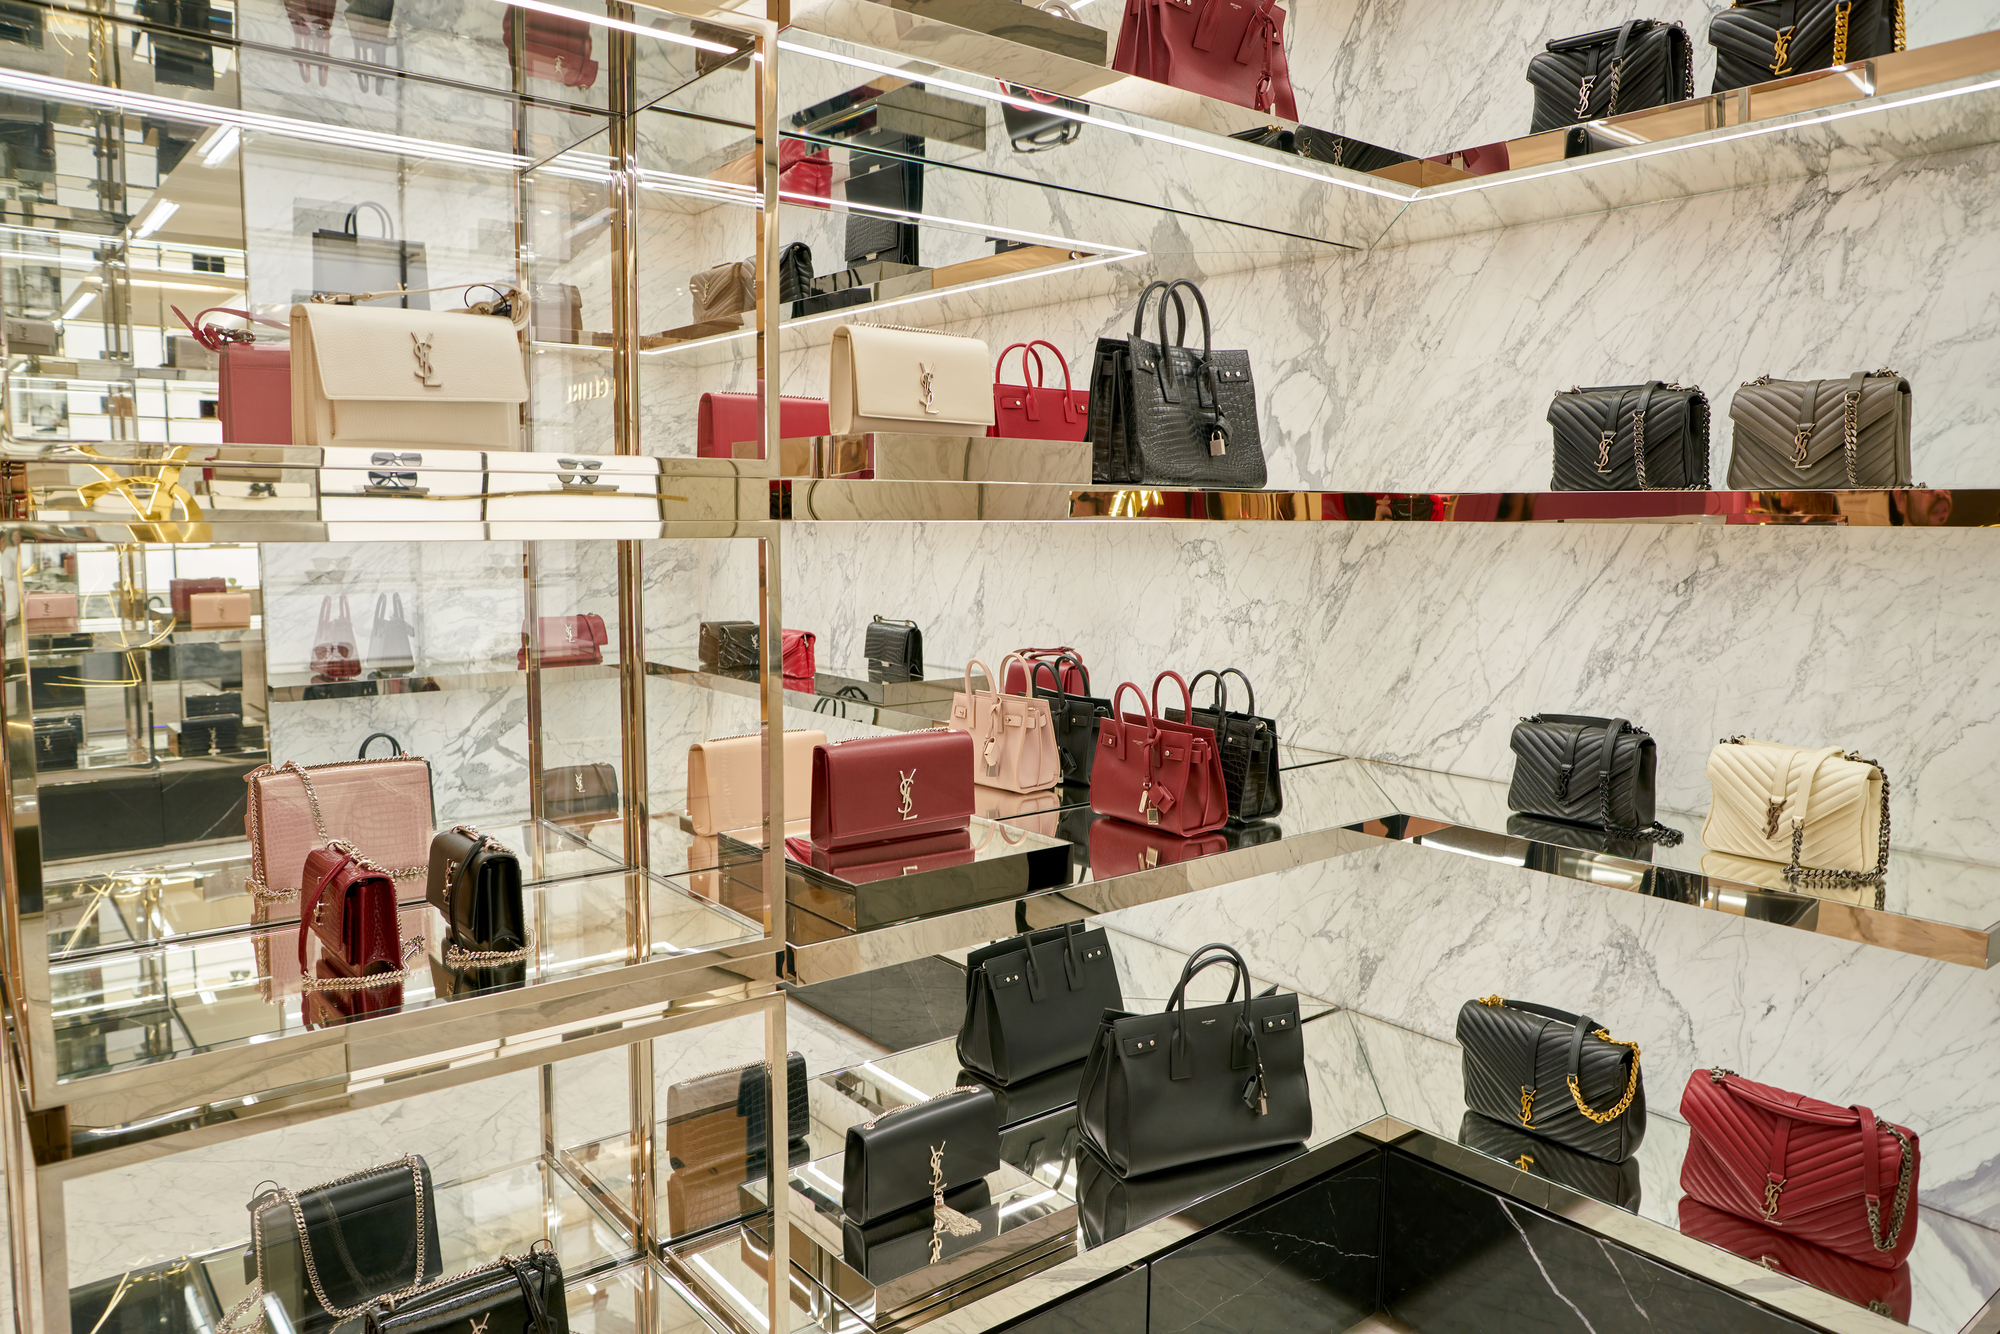 ROME, ITALY - CIRCA NOVEMBER, 2017: Yves Saint Laurent bags on display at a second flagship store of Rinascente in Rome